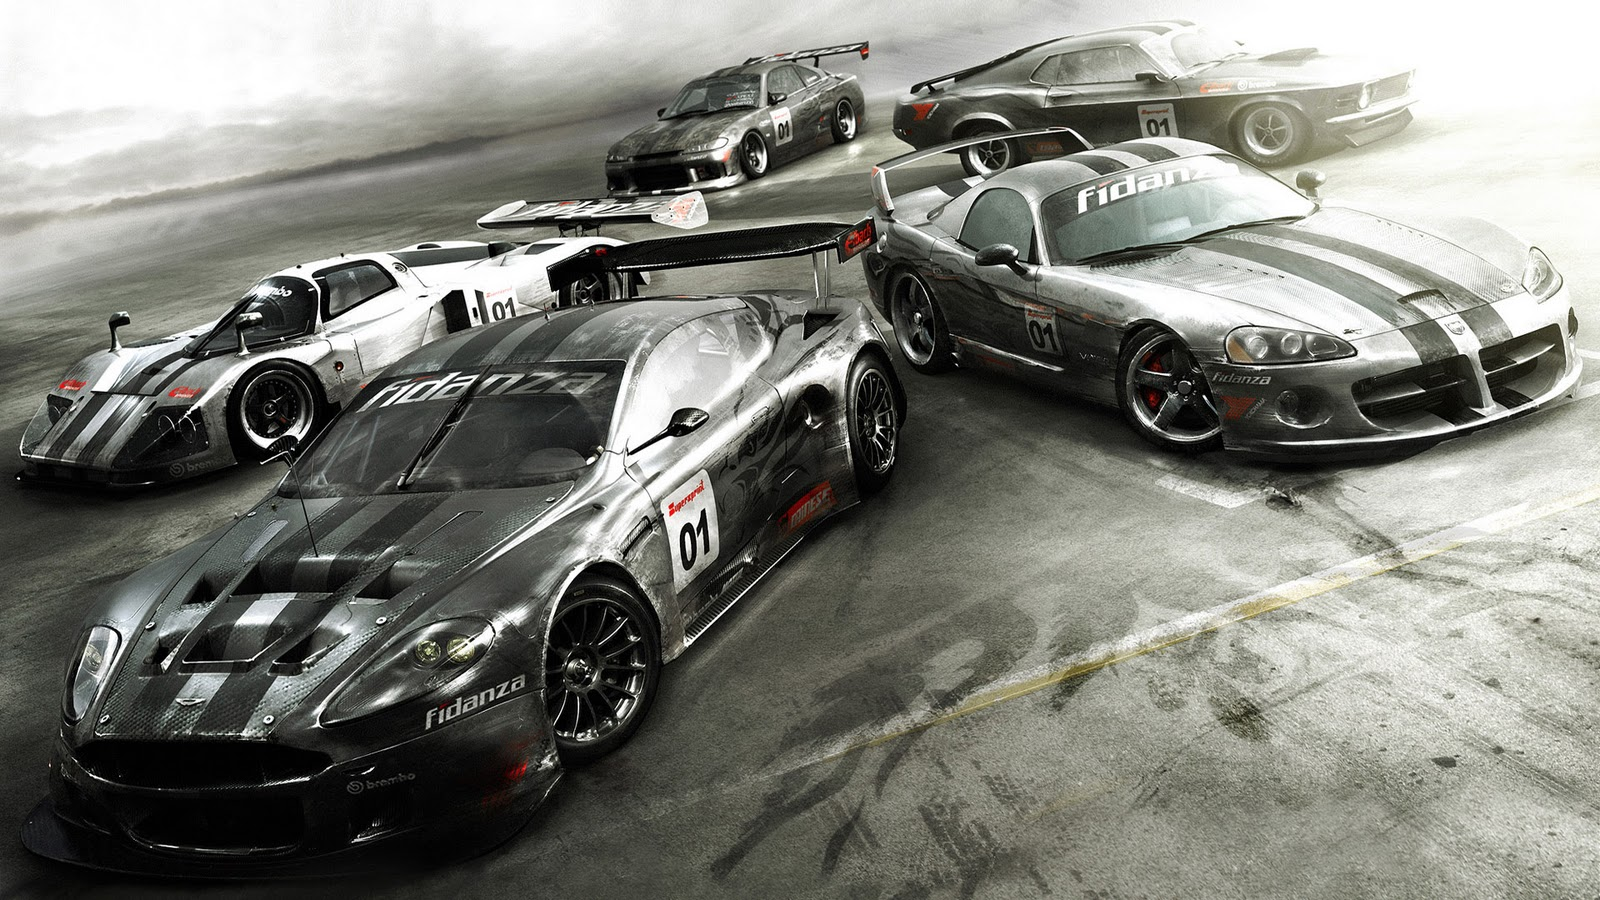 http://1.bp.blogspot.com/-qBDSTDuBNSc/TnLo8zevsdI/AAAAAAAALaQ/WFv6pI3vHXU/s1600/40+Car+Games+Wallpapers+HD+1920+X+1080+%252821%2529.jpg